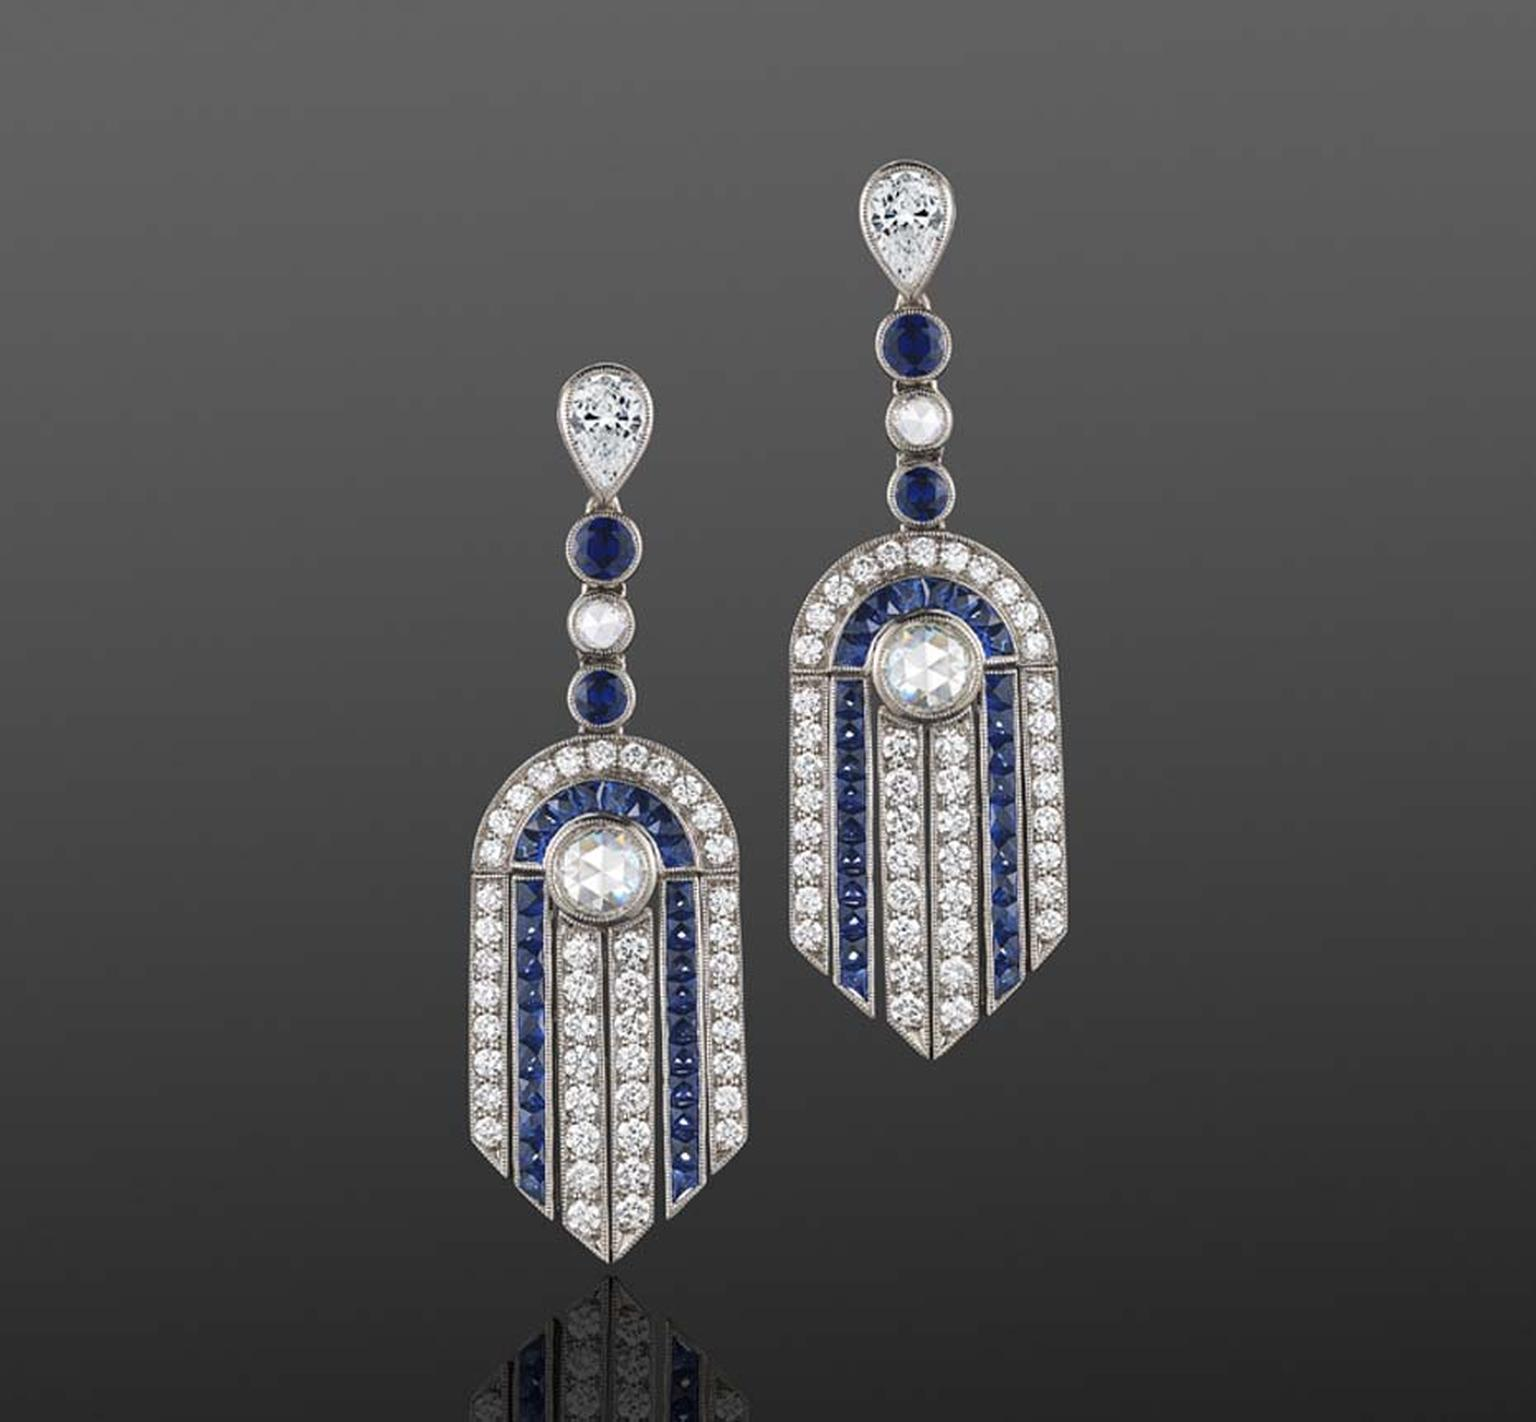 French-cut sapphire and diamond fringe fountain pendant earrings from the Fred Leighton contemporary collection